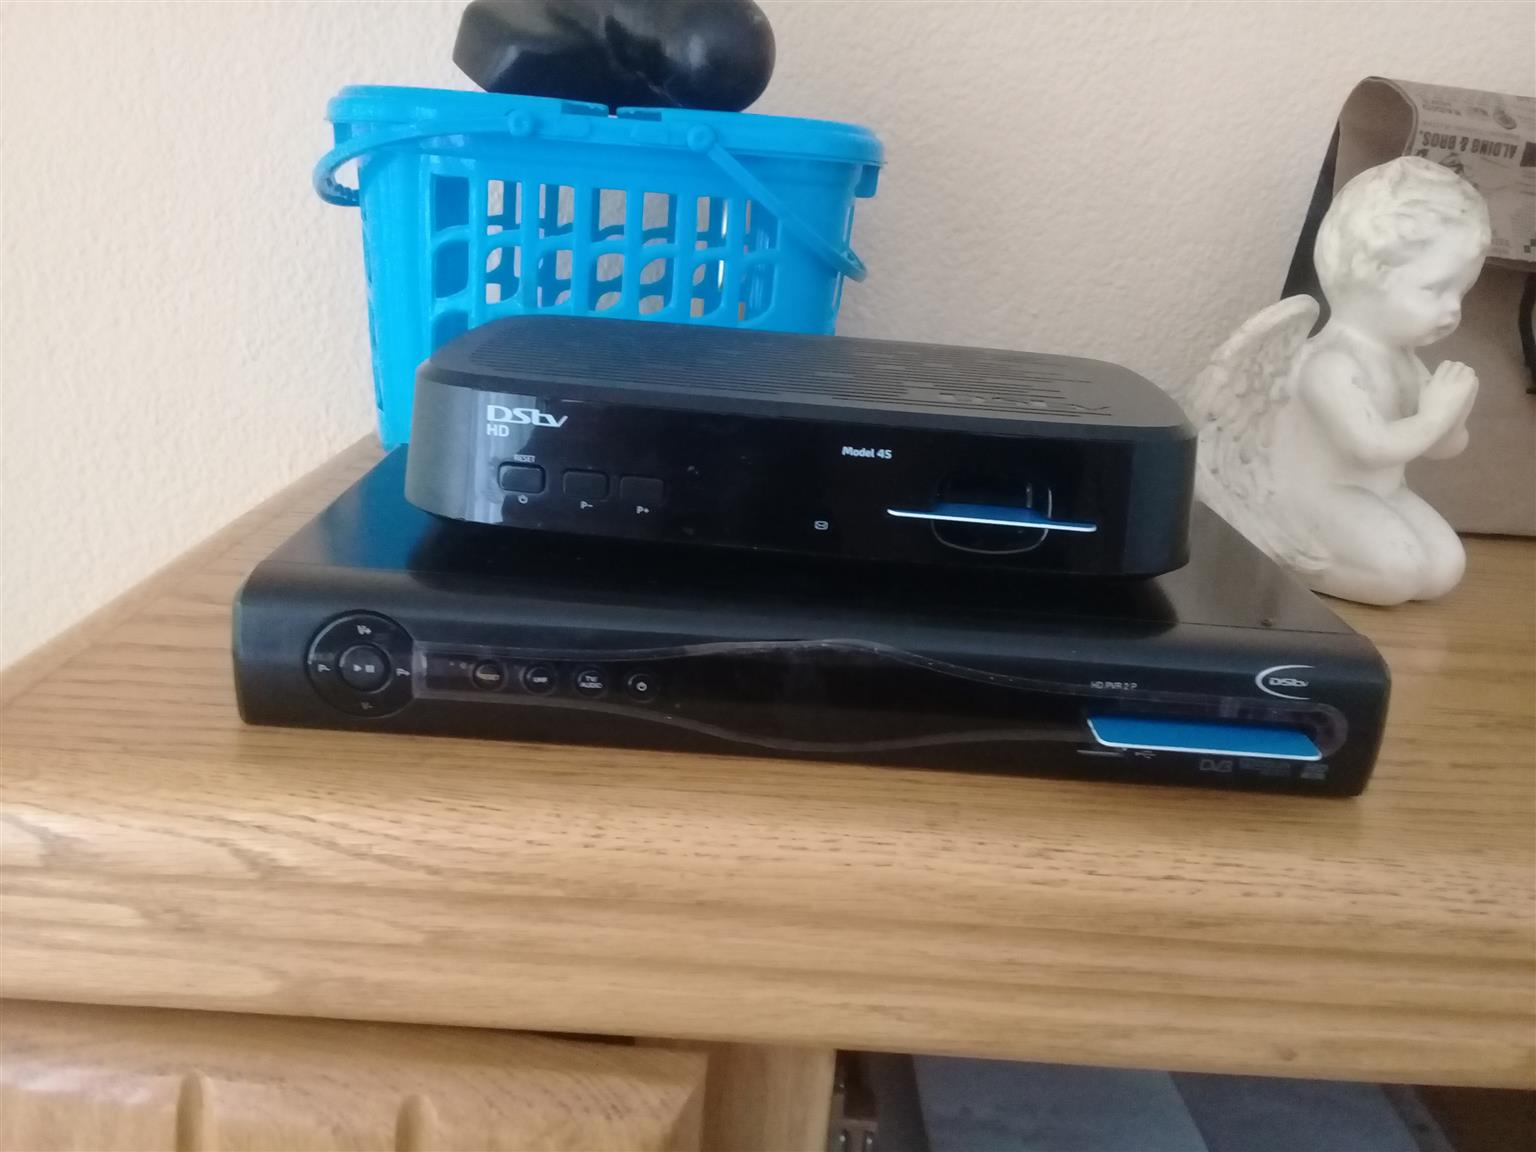 Selling my PVR and DSTV HD Model 45